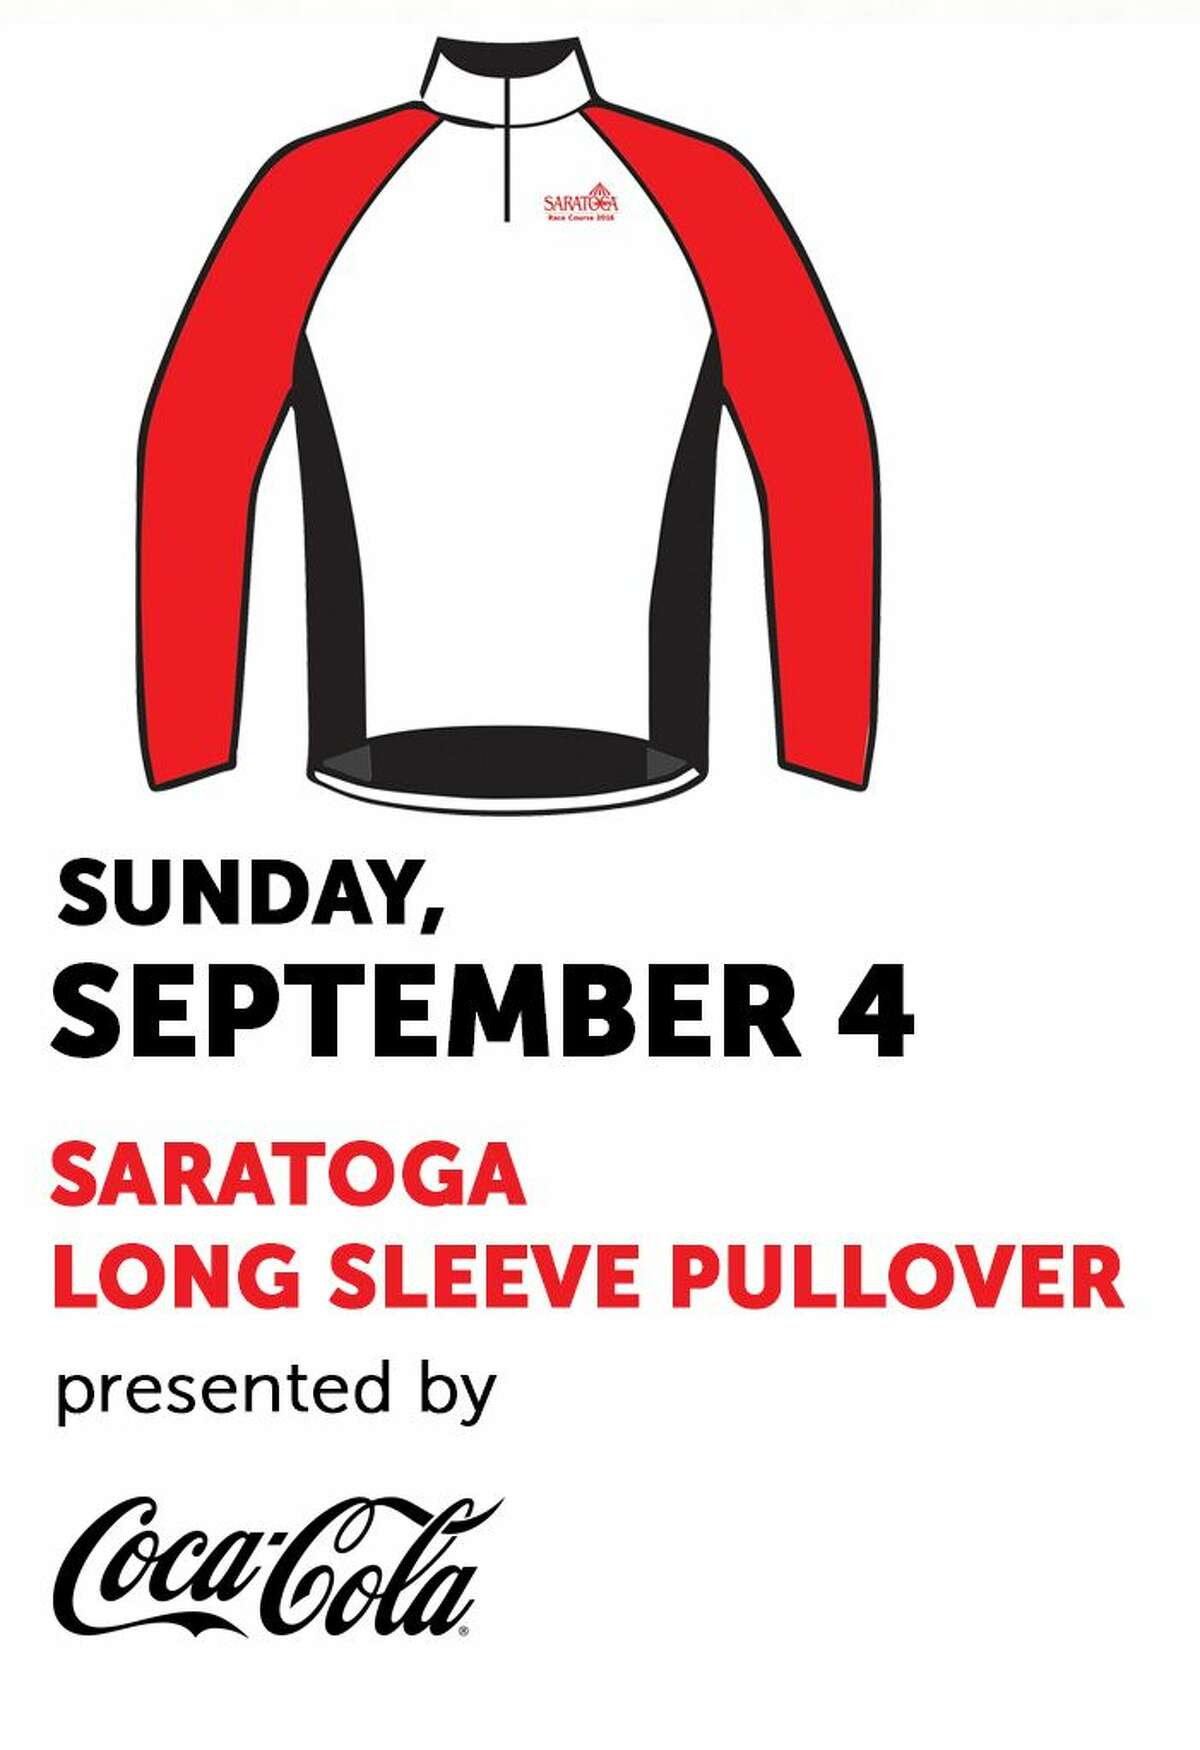 The Saratoga Long-Sleeve Pullover will be the free giveaway offered on Sunday, Sept. 4, 2016 at Saratoga Race Course.